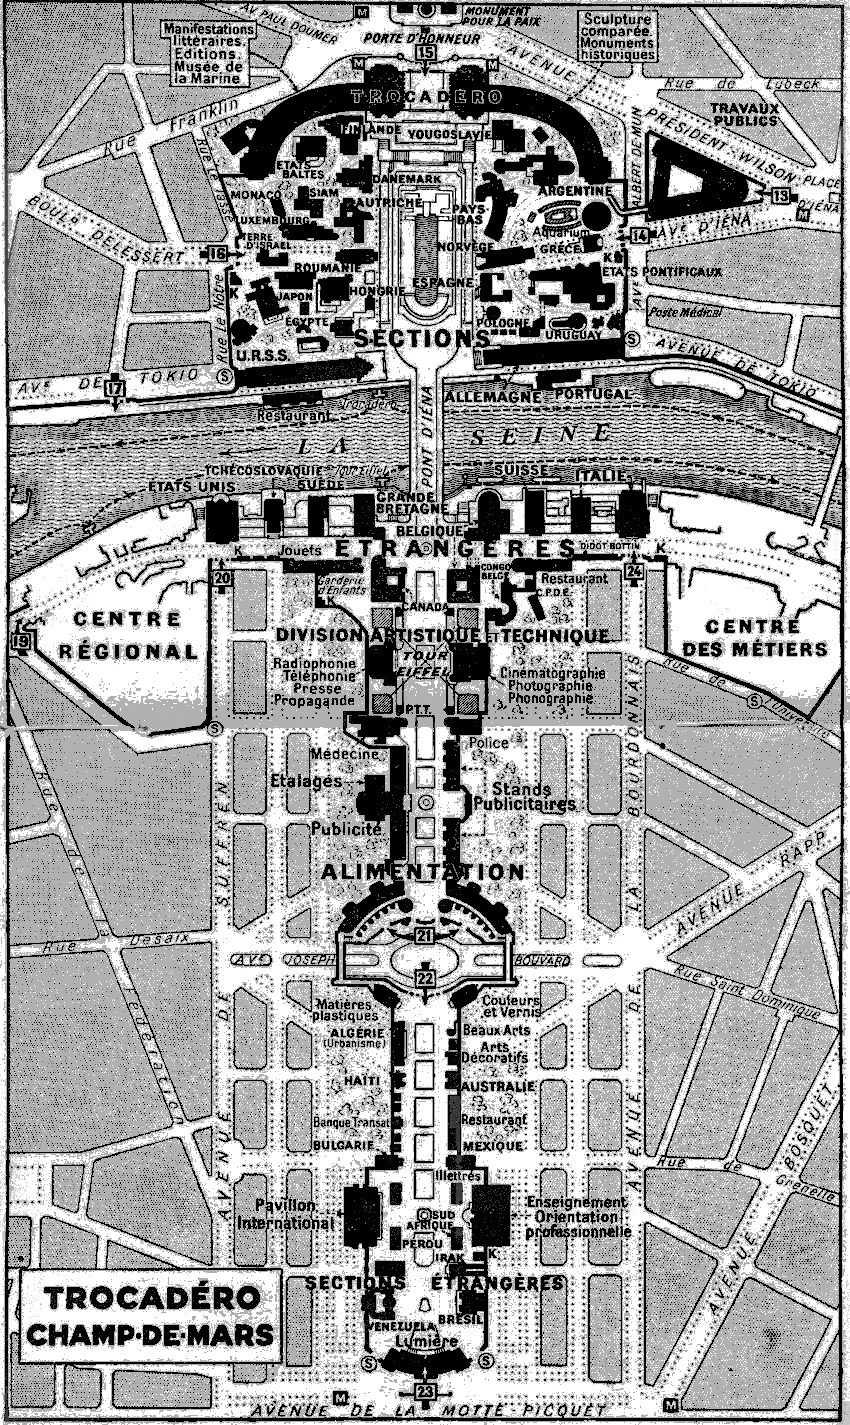 1925 Exposition Plan